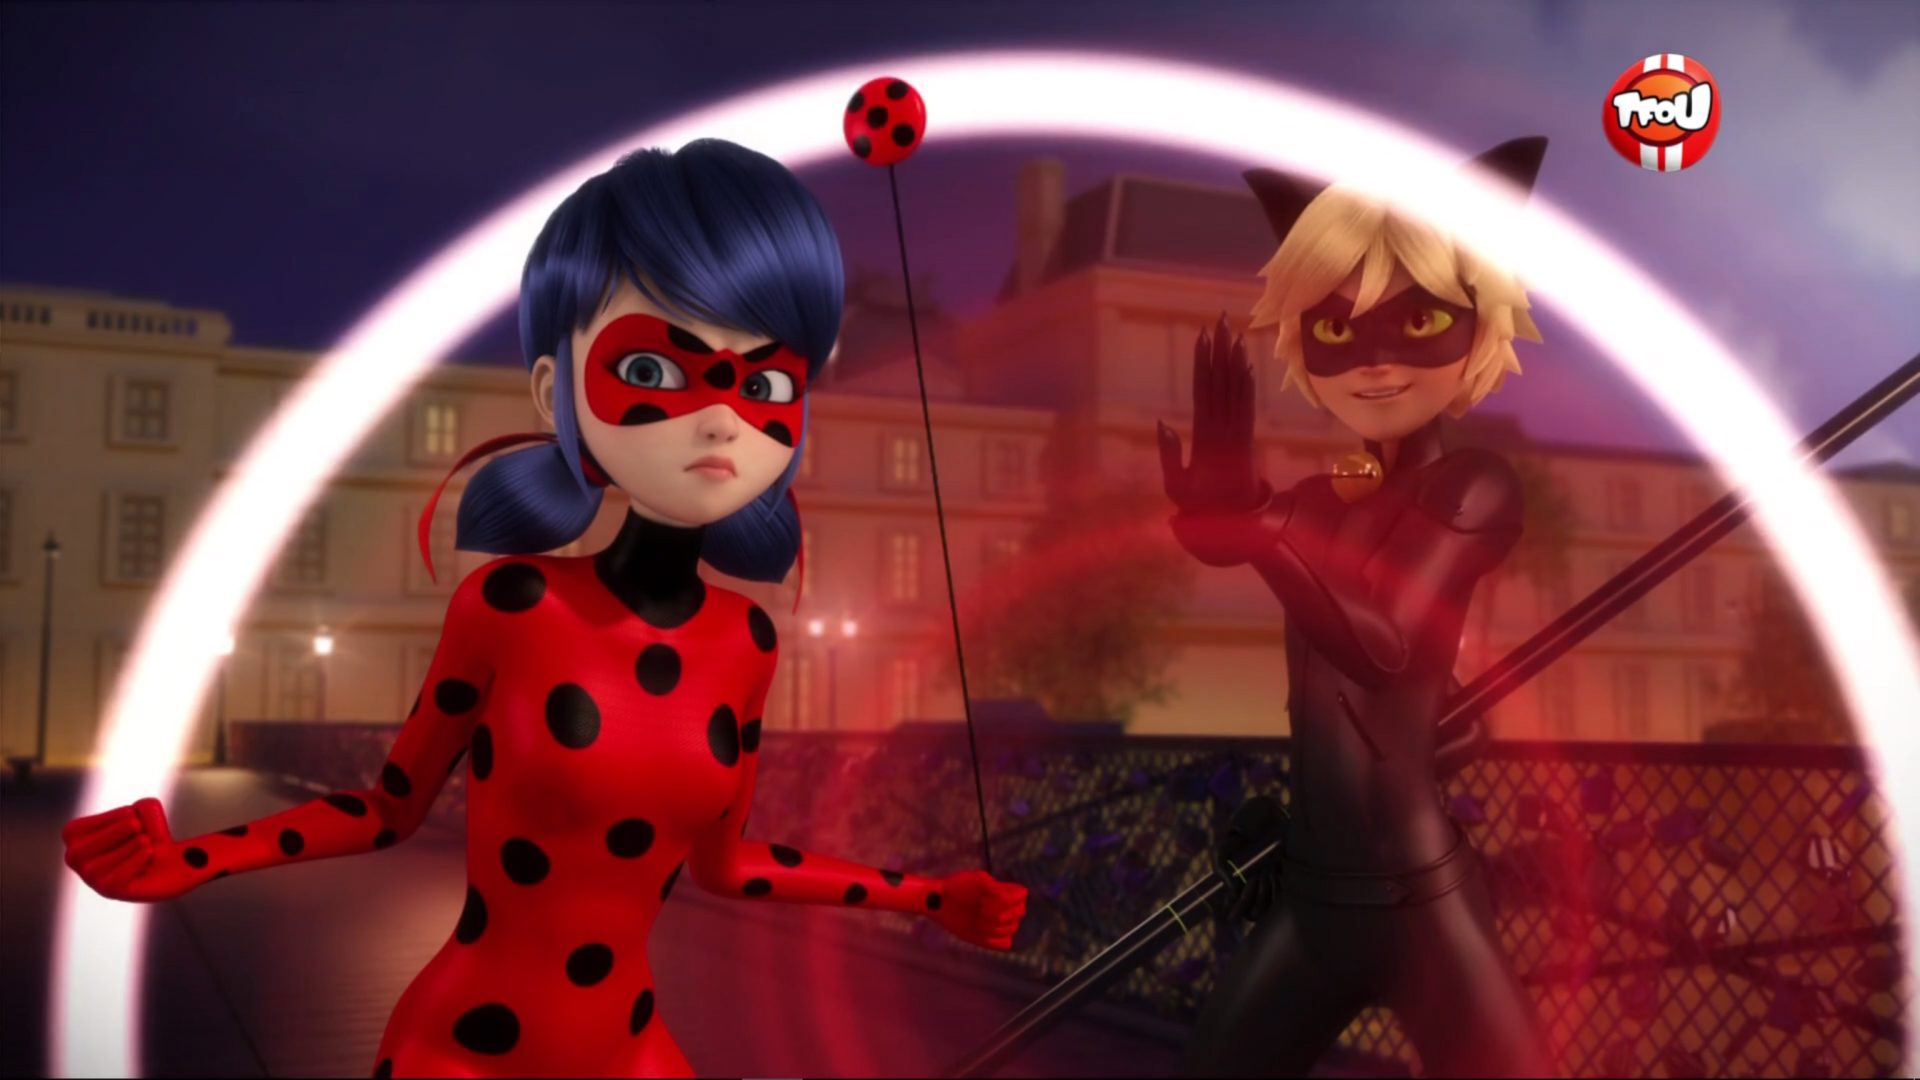 Miraculous Ladybug characters in Ever After High style